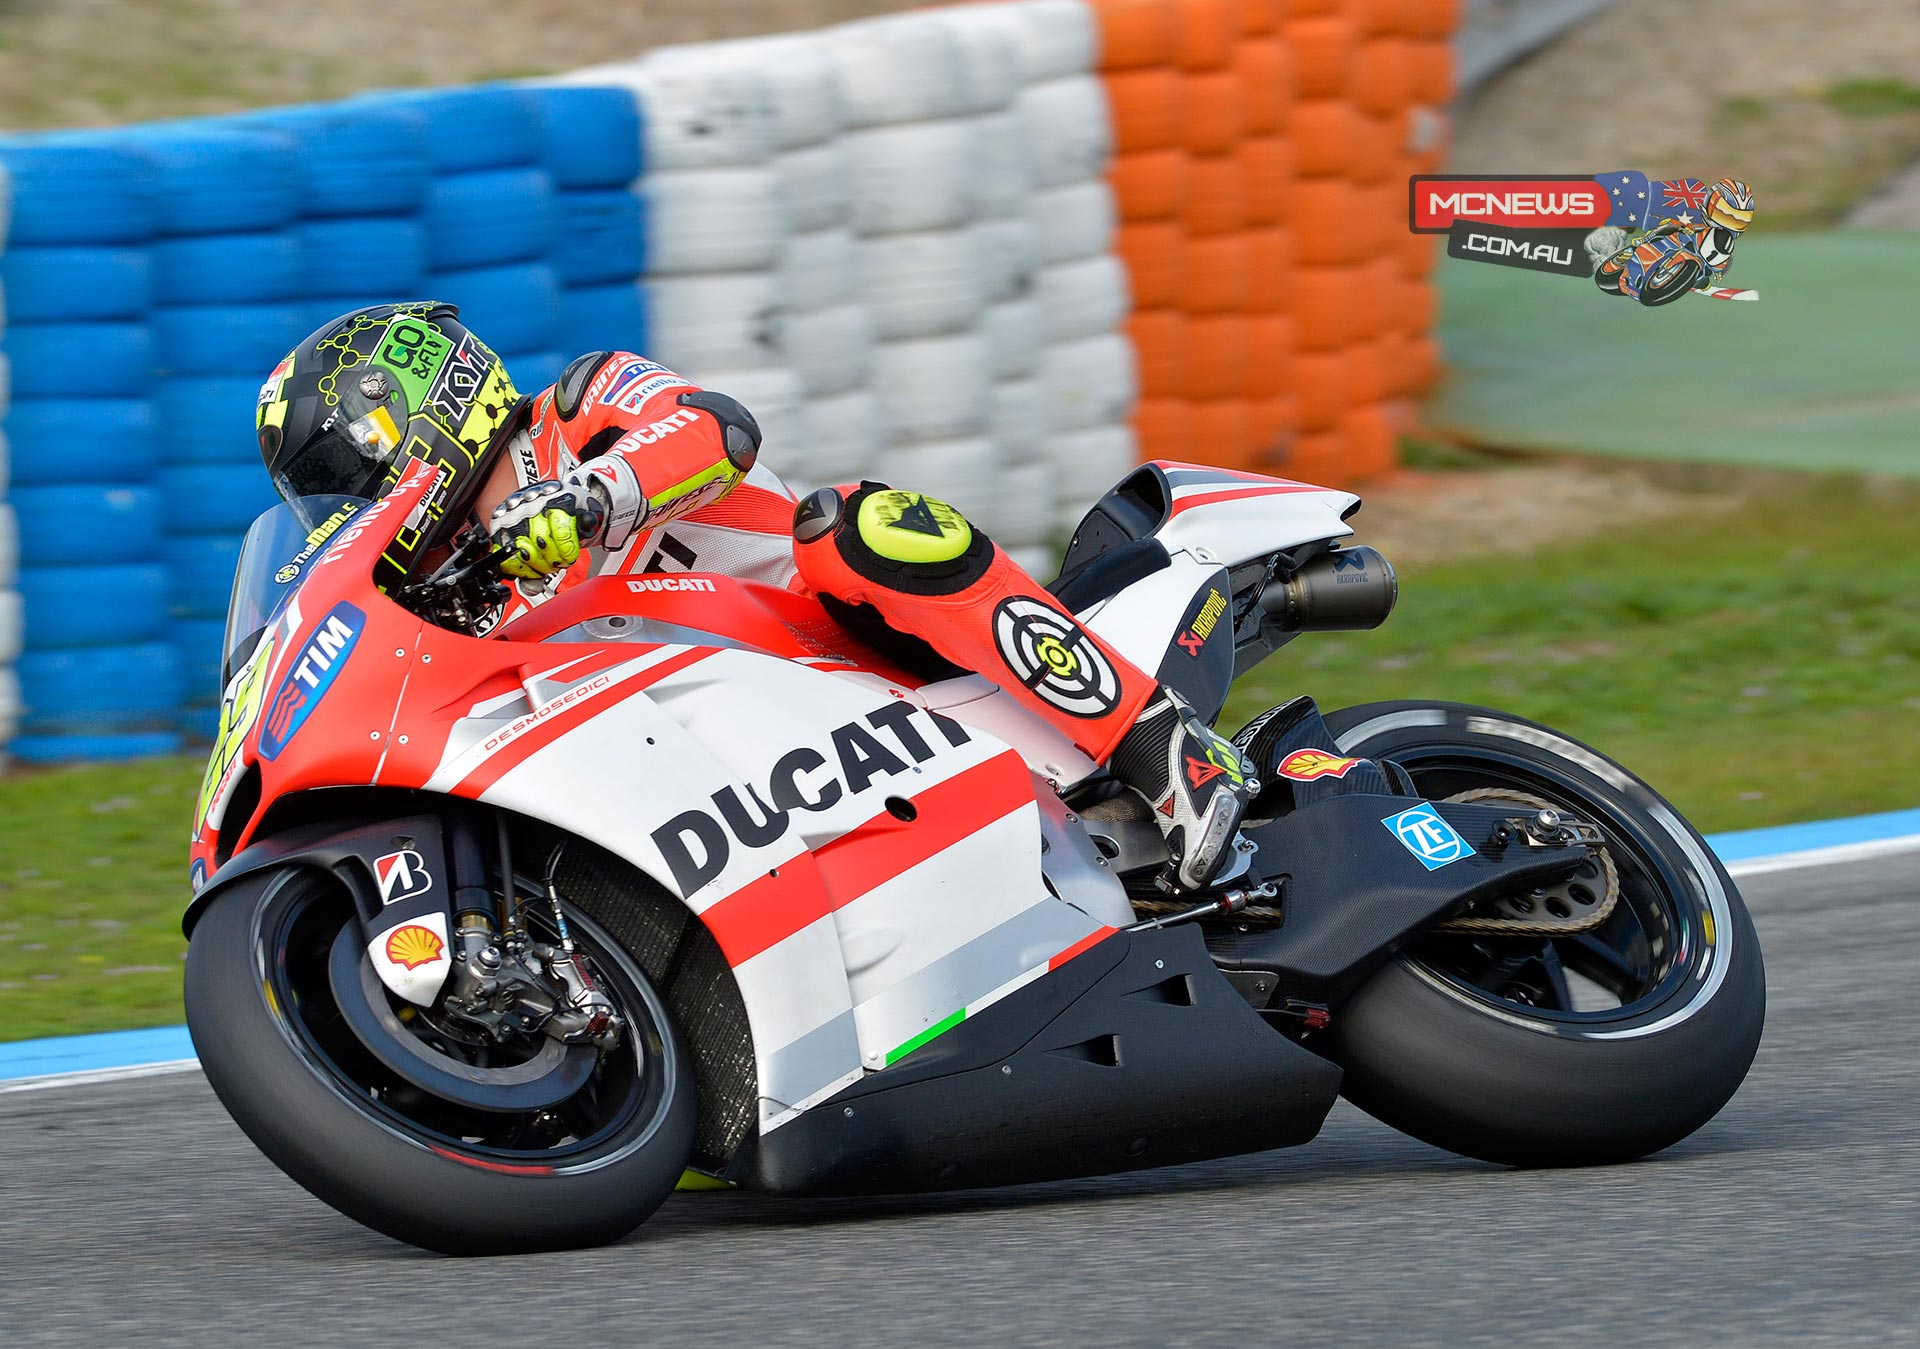 """Andrea Iannone (Ducati Team #29) – 1'39.0 """"Yesterday was quite a positive day because we were able to try out various set-ups for the bike, eliminate some doubts and confirm what we had already tested at Valencia. In the end I lapped quicker than what I did in the GP race. Even with the hard tyre I managed to do a good time and maintain a good pace, so I am quite happy about how this last test of the year went. We have accumulated a lot of good information for the new bike over the last two days. I'm also happy with the team, I like my new group of guys a lot and I'm pleased with the way we work in the box."""""""